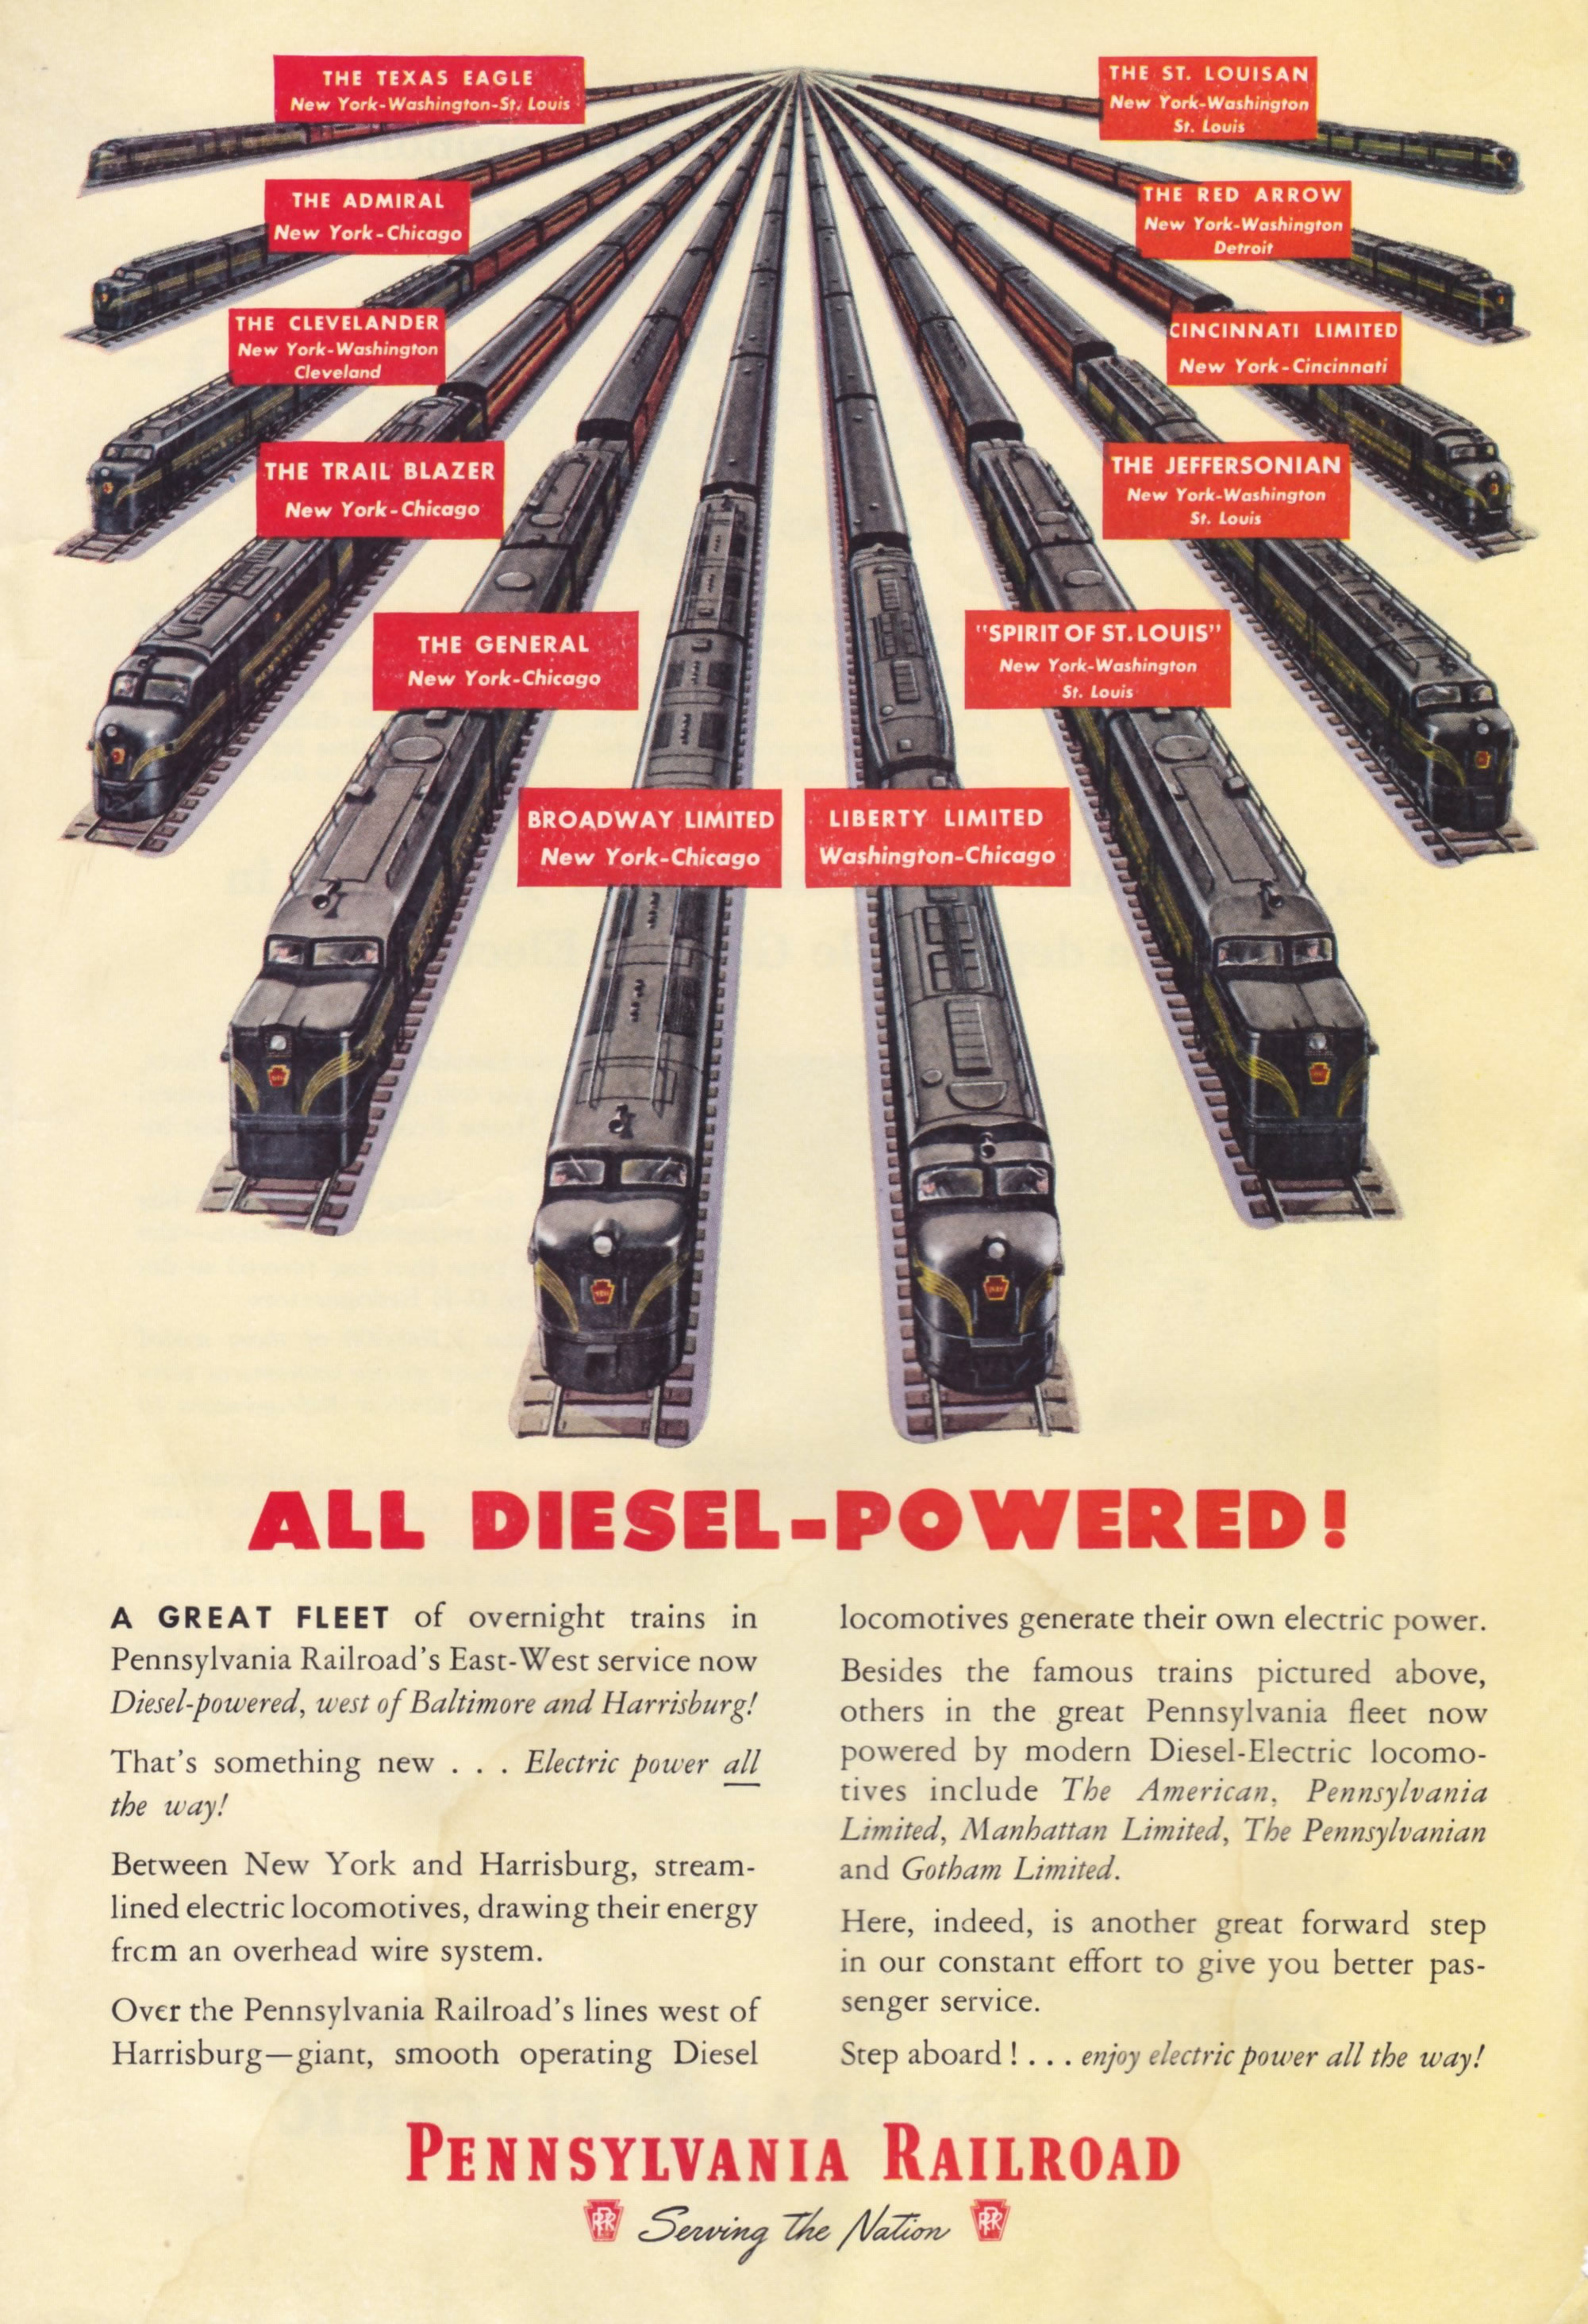 PA Railroad ad for its diesel engines